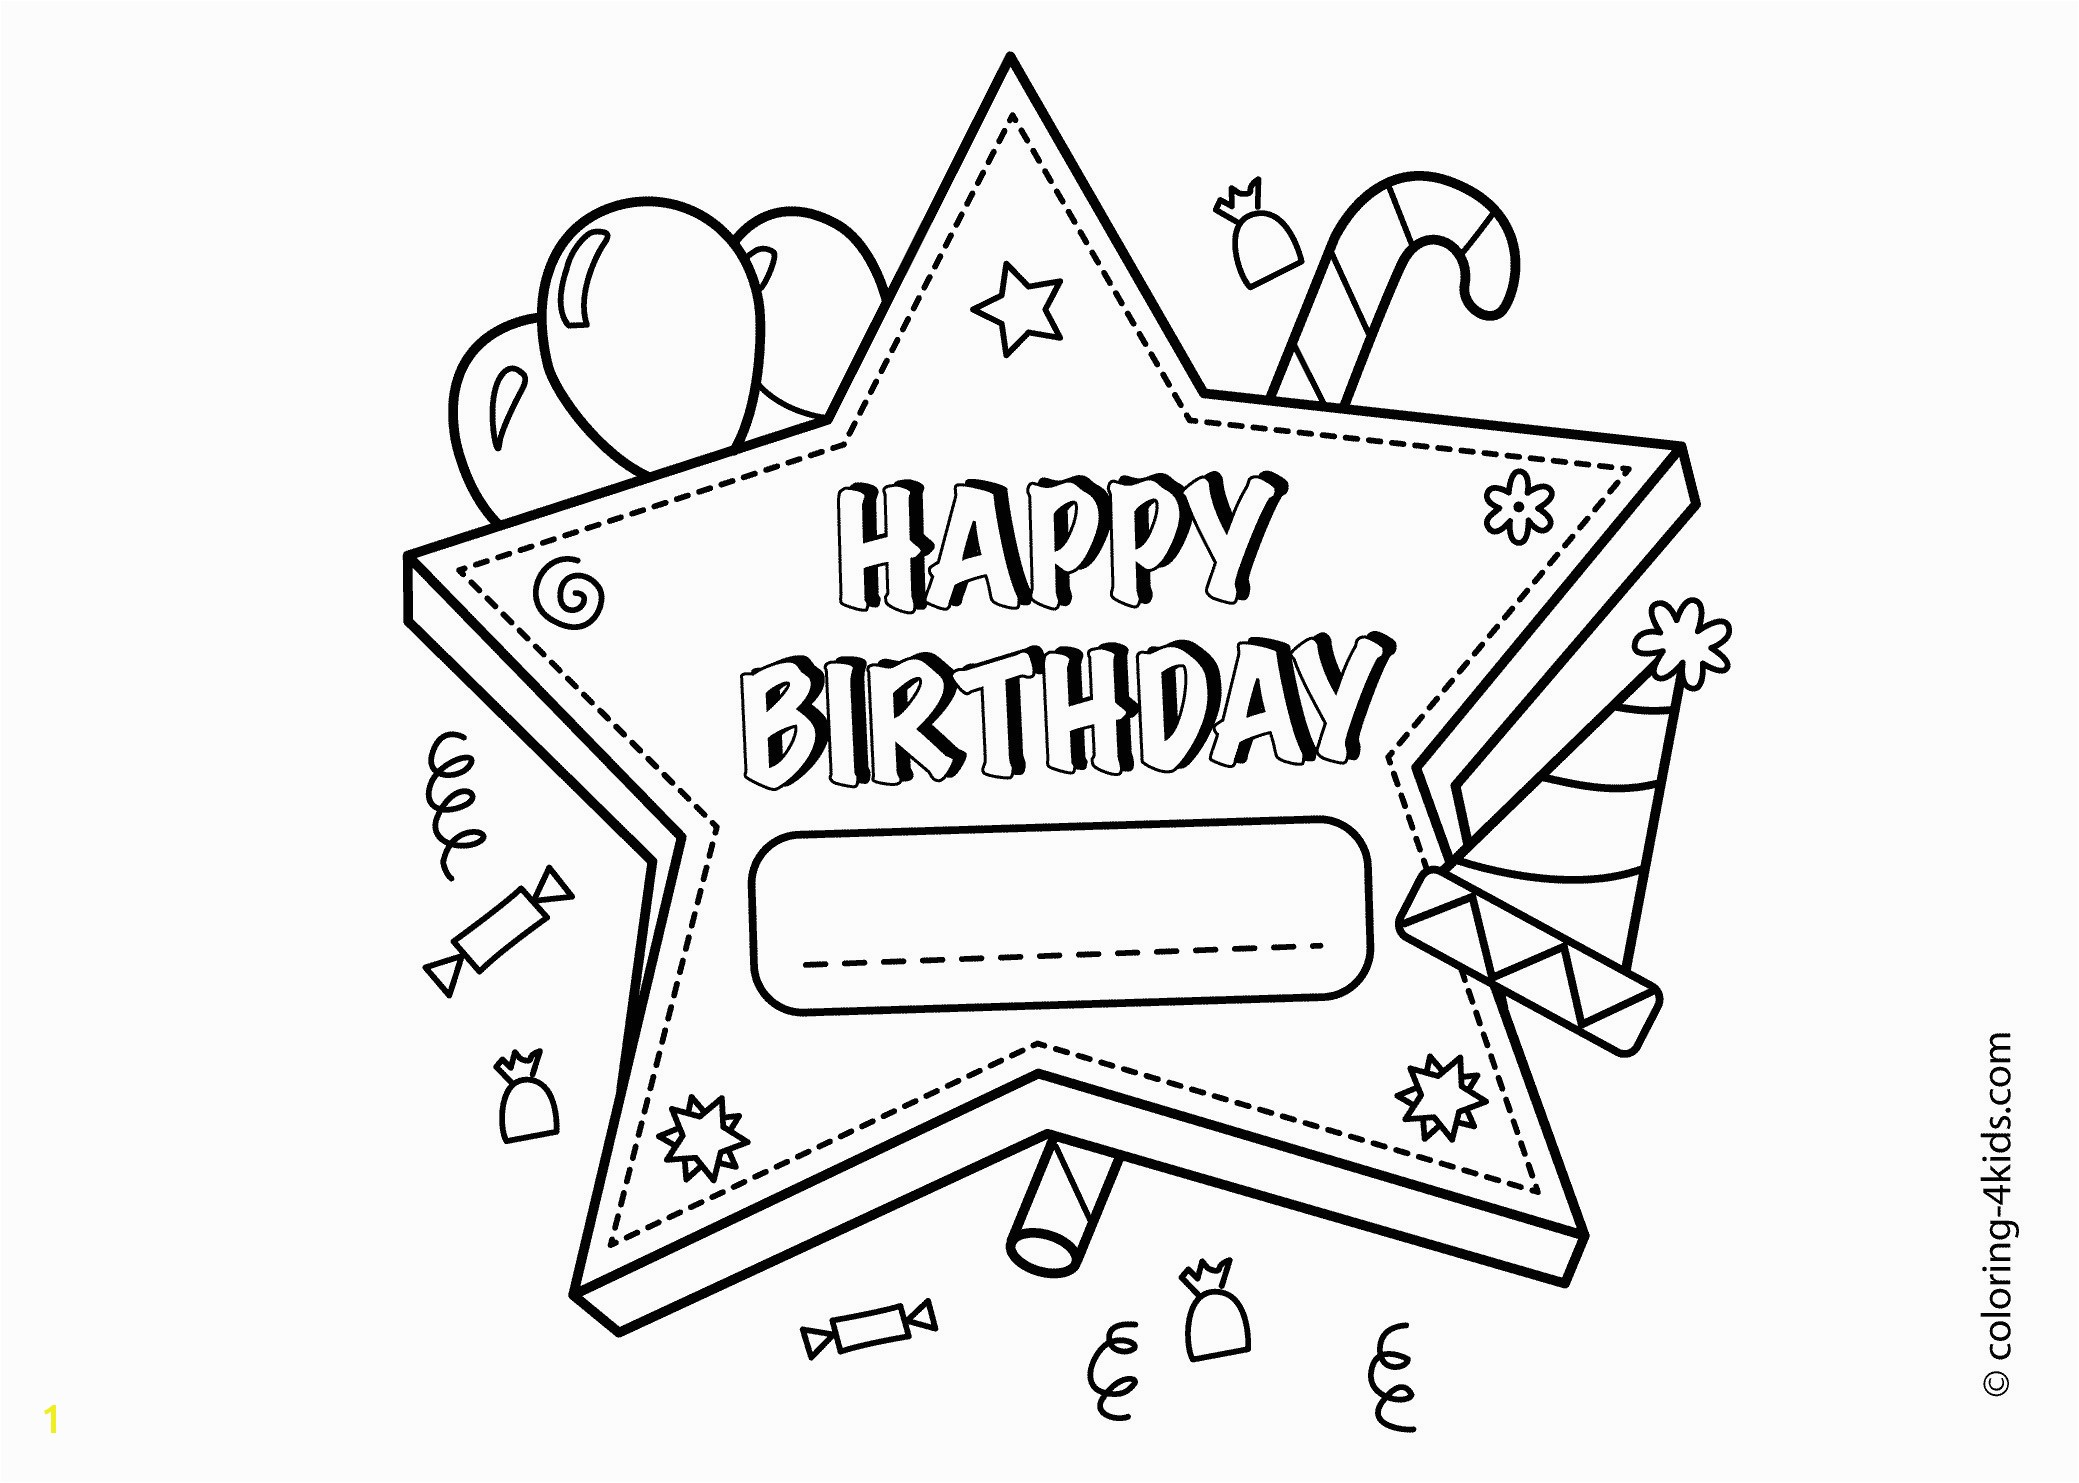 Birthday Coloring Pages for Aunts Adult Happy Birthday Coloring Pages Gallery 9 G 7